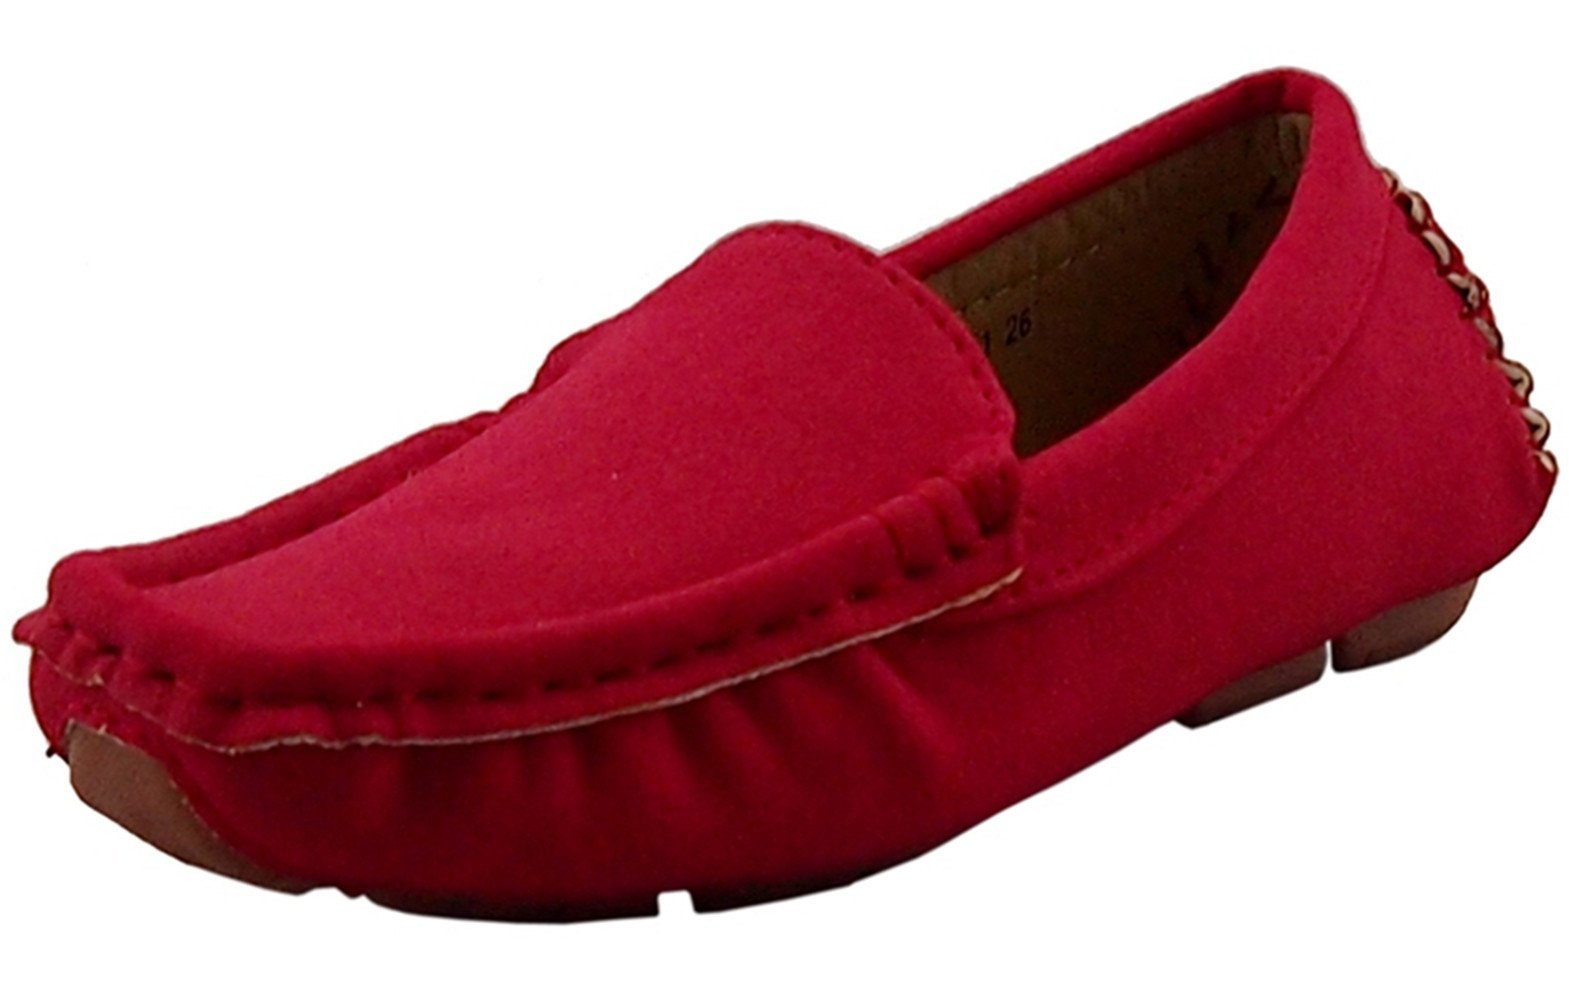 DADAWEN Girl's Boy's Suede Slip-on Loafers Oxford Shoes Red US Size 6.5 M Toddler by DADAWEN (Image #1)